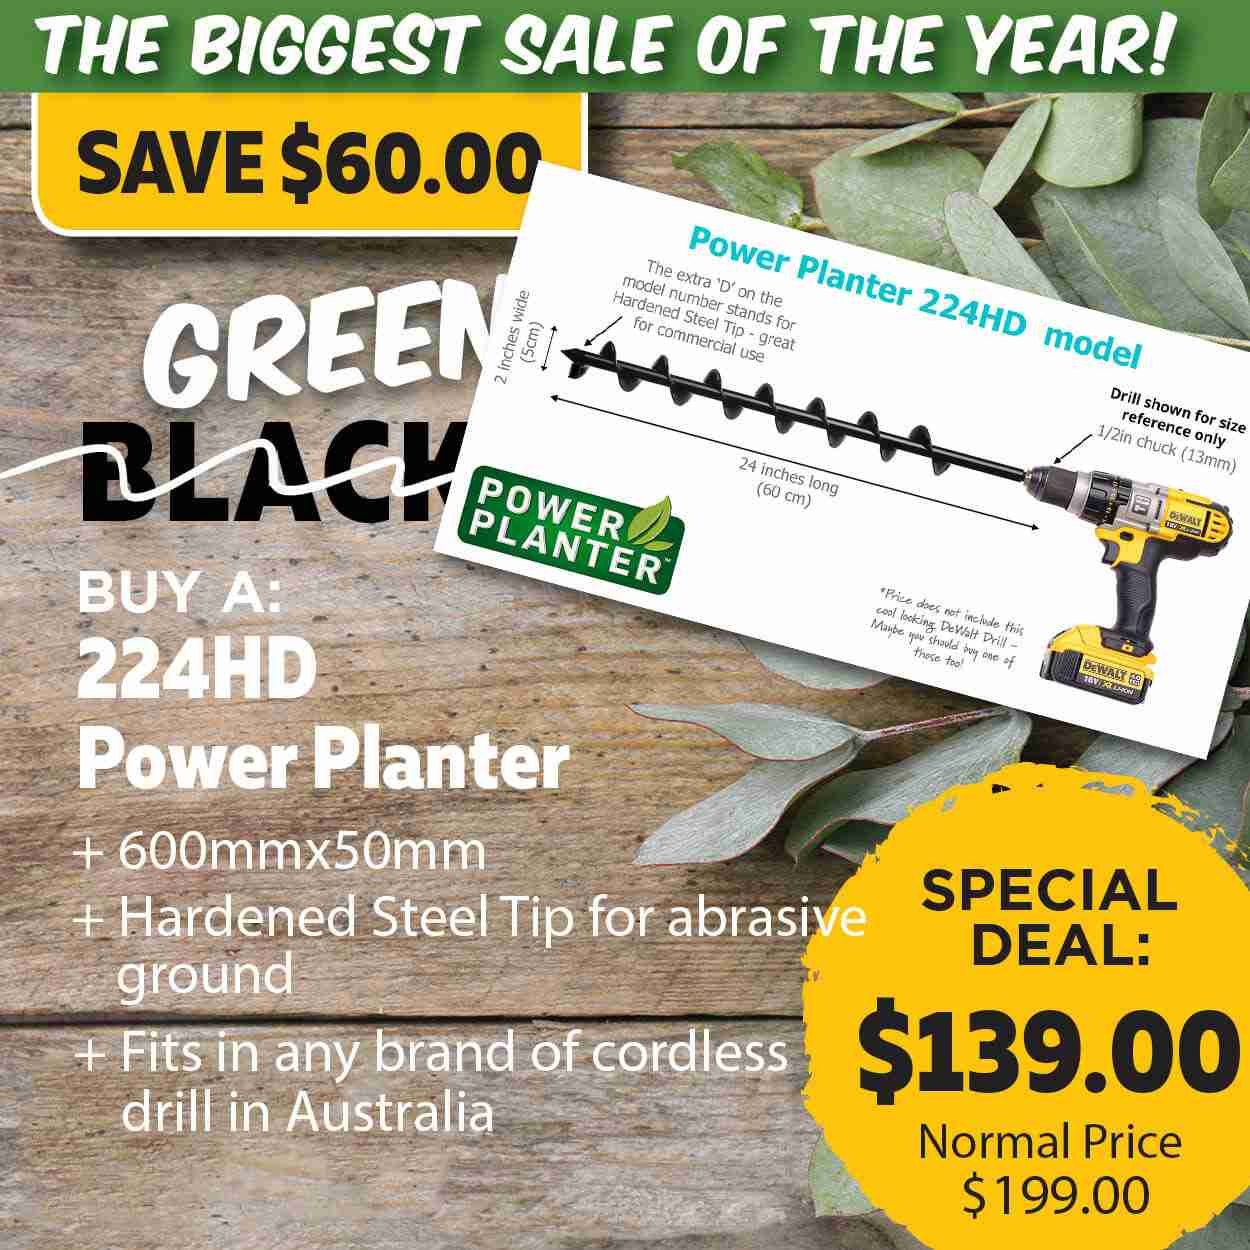 Green Friday Super Deal $199 value for just $139 - The biggest sale of the year.